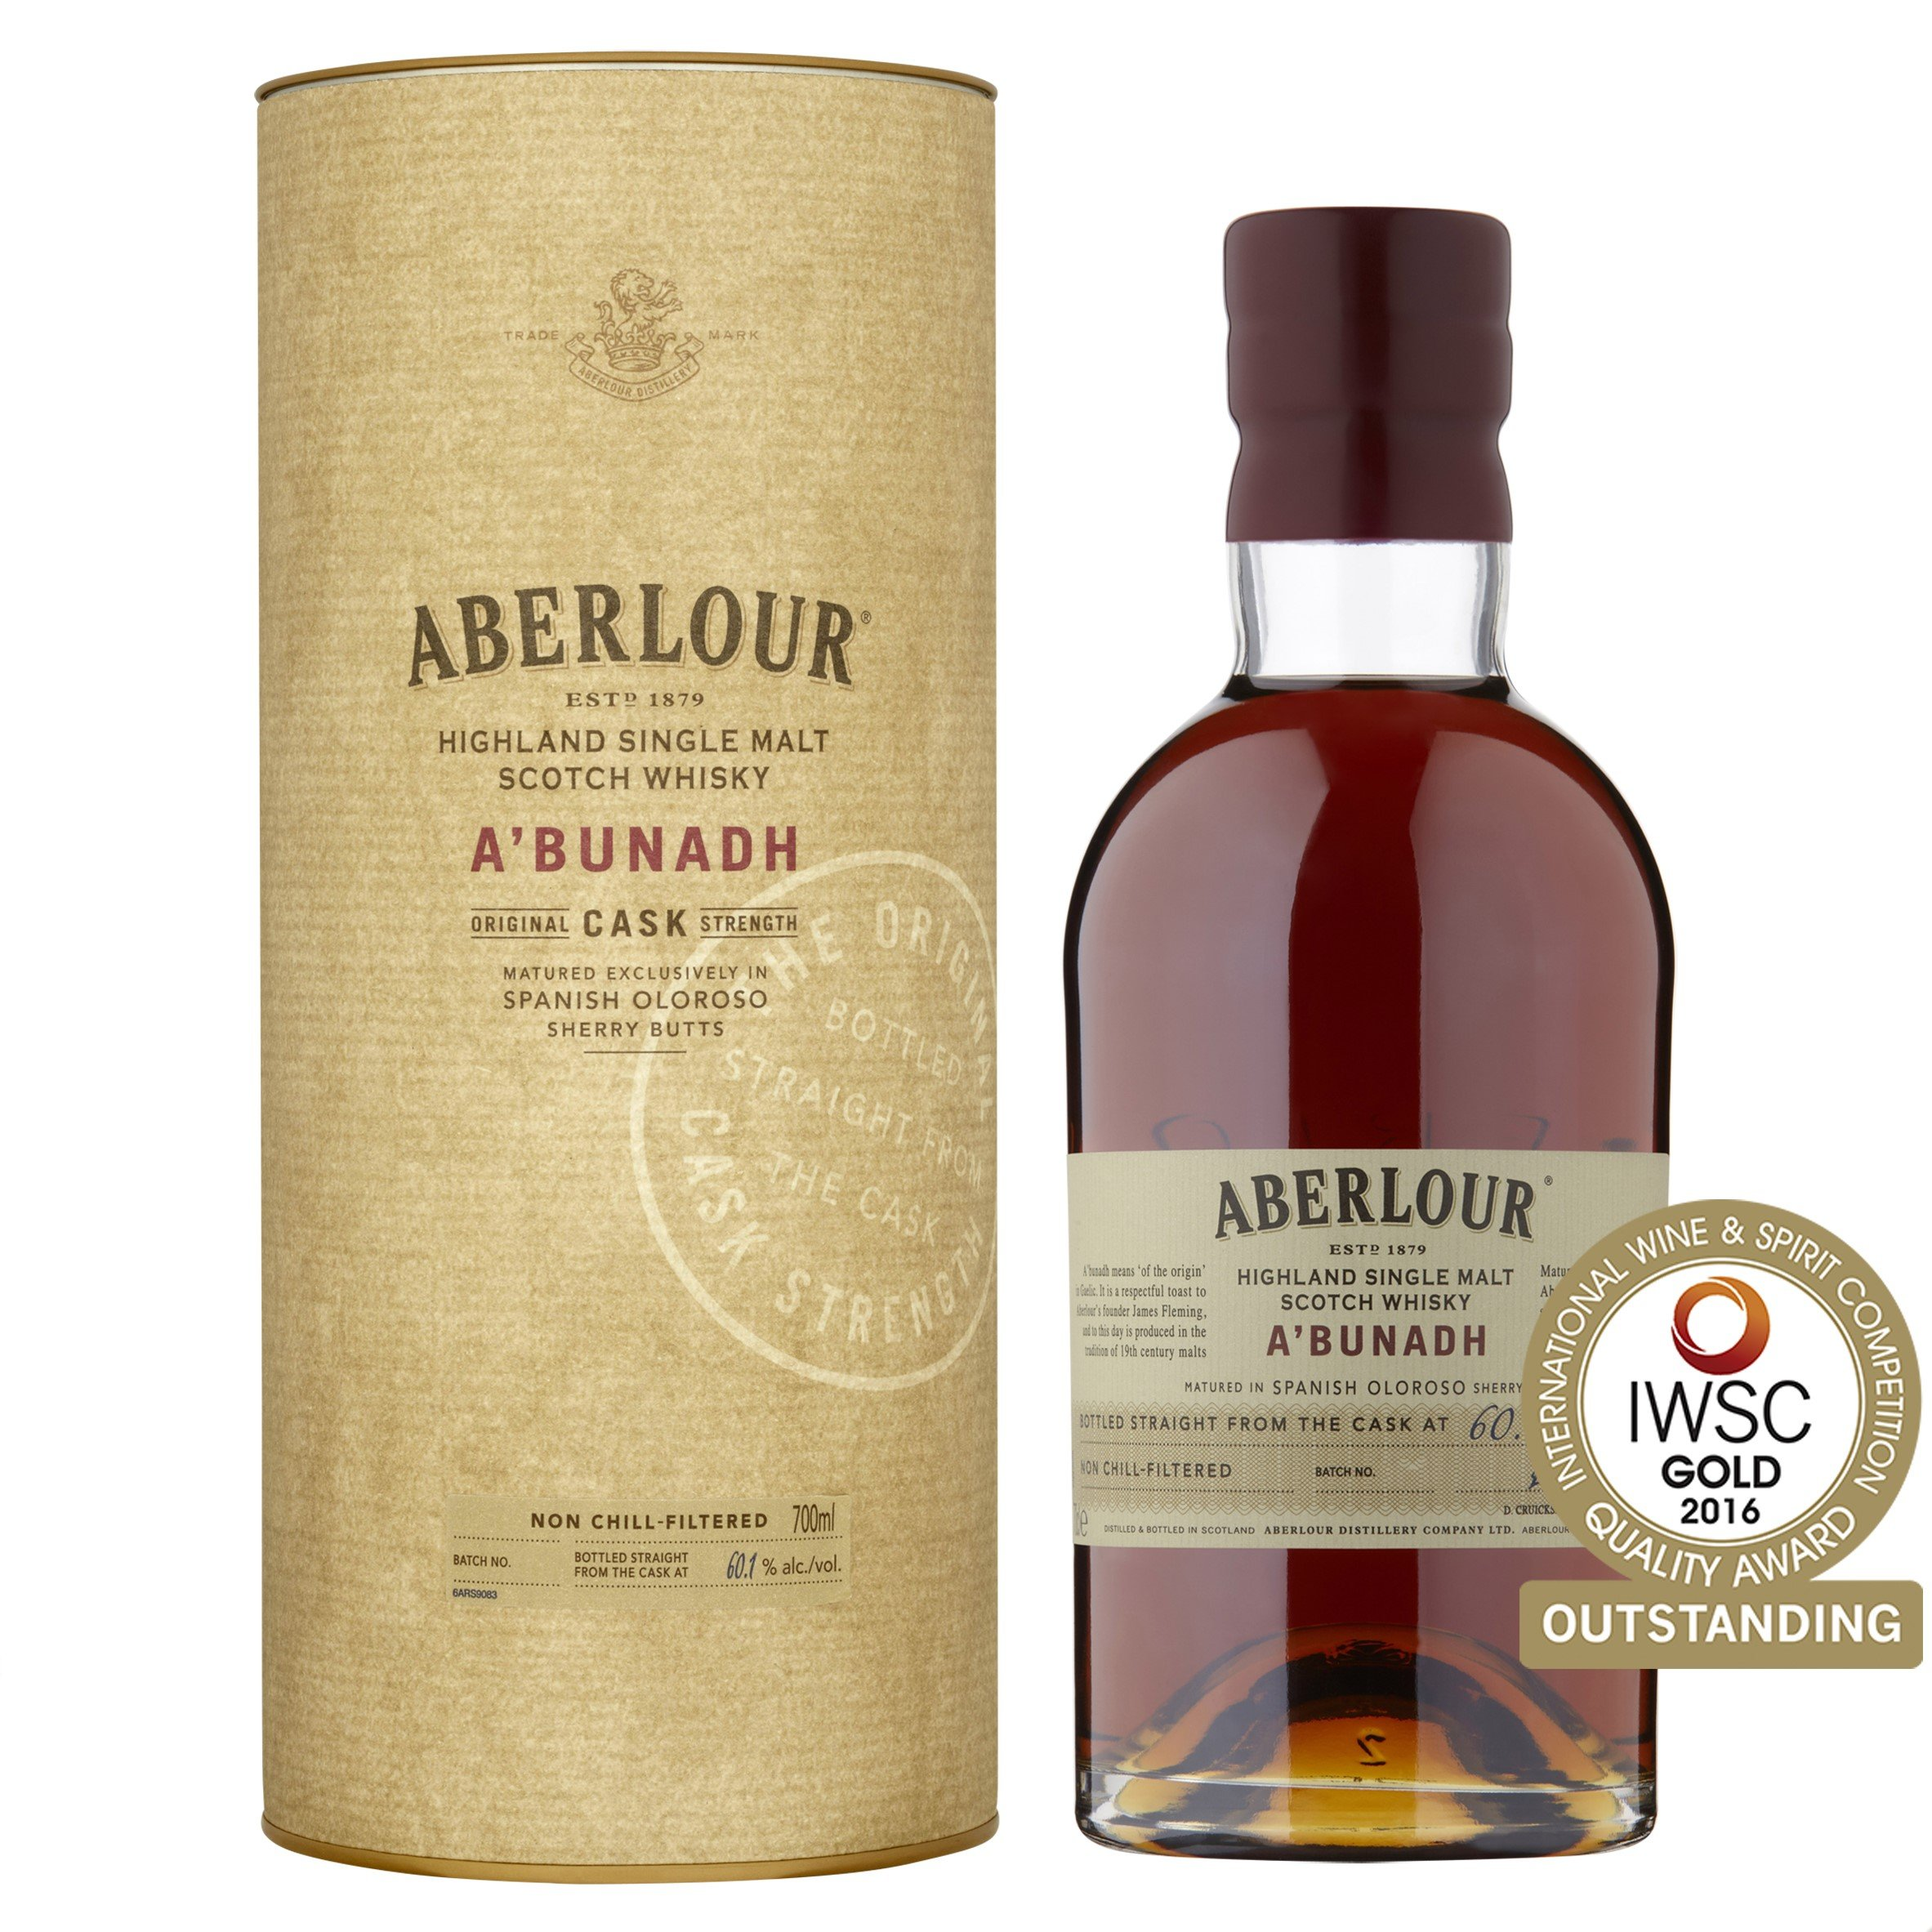 Aberlour A'Bunadh Single Malt Scotch Whisky, 70cl (Batch numbers may vary)